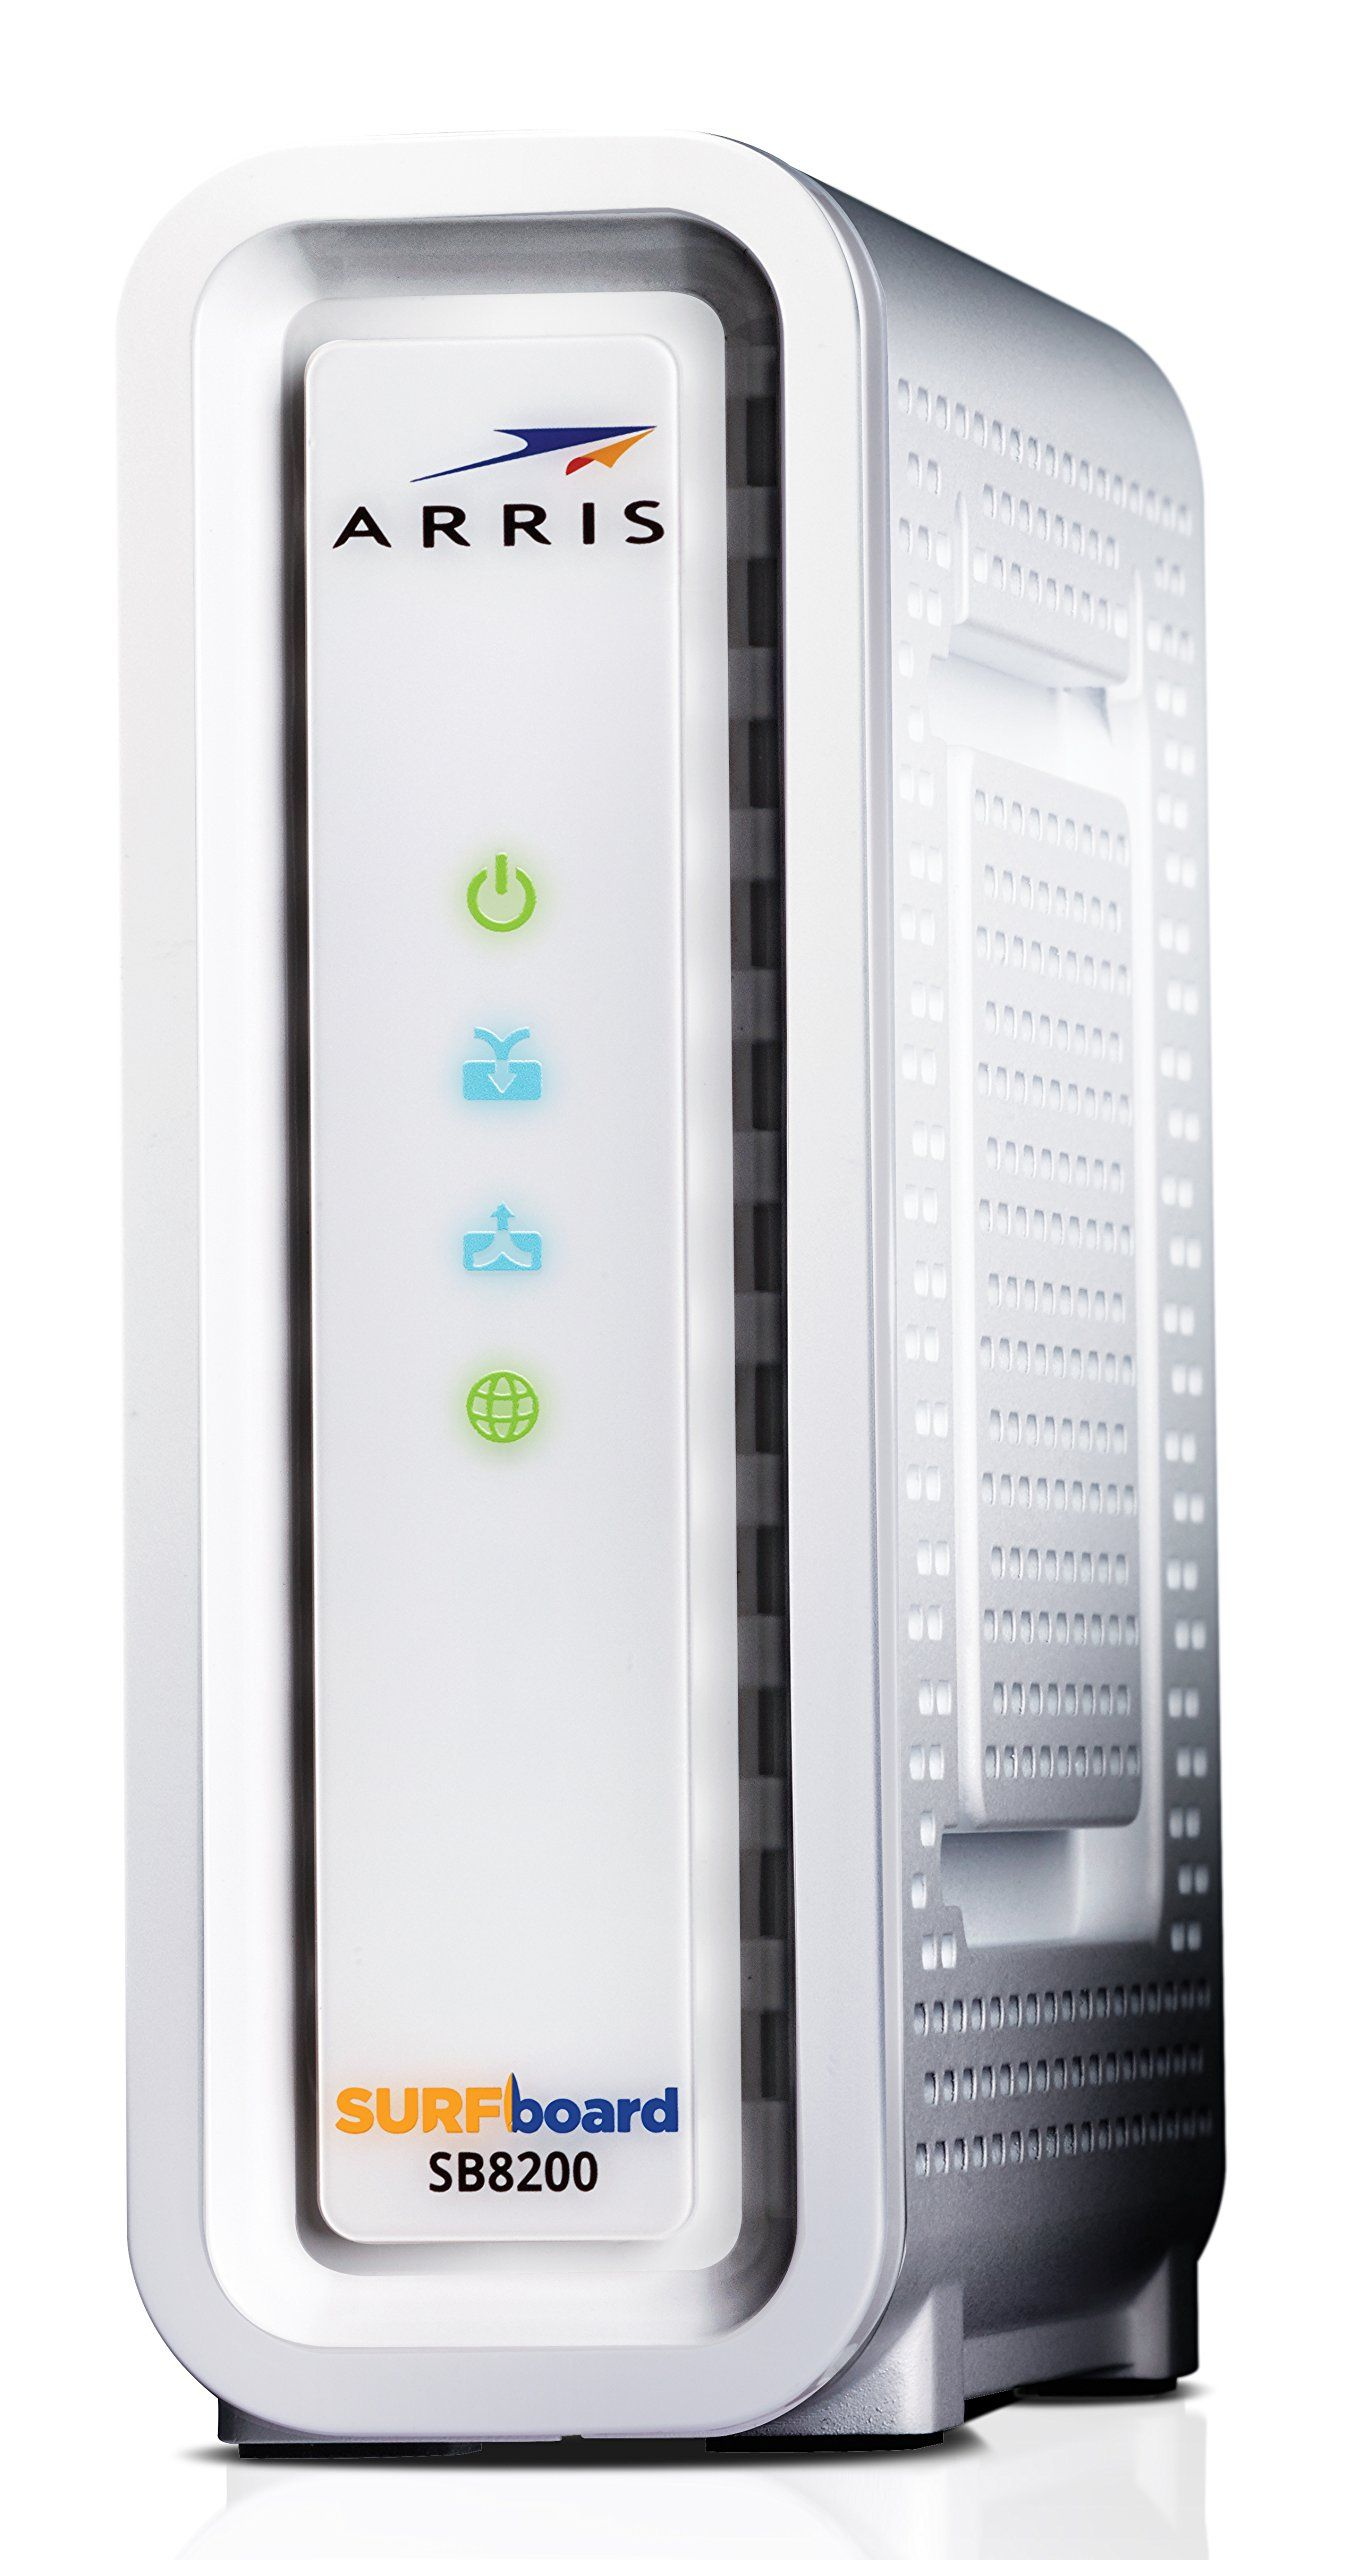 Next Generation Arris Surfboard Sb8200 Docsis 3 1 Cable Modem Retail Packaging White With Images Cable Modem Modems